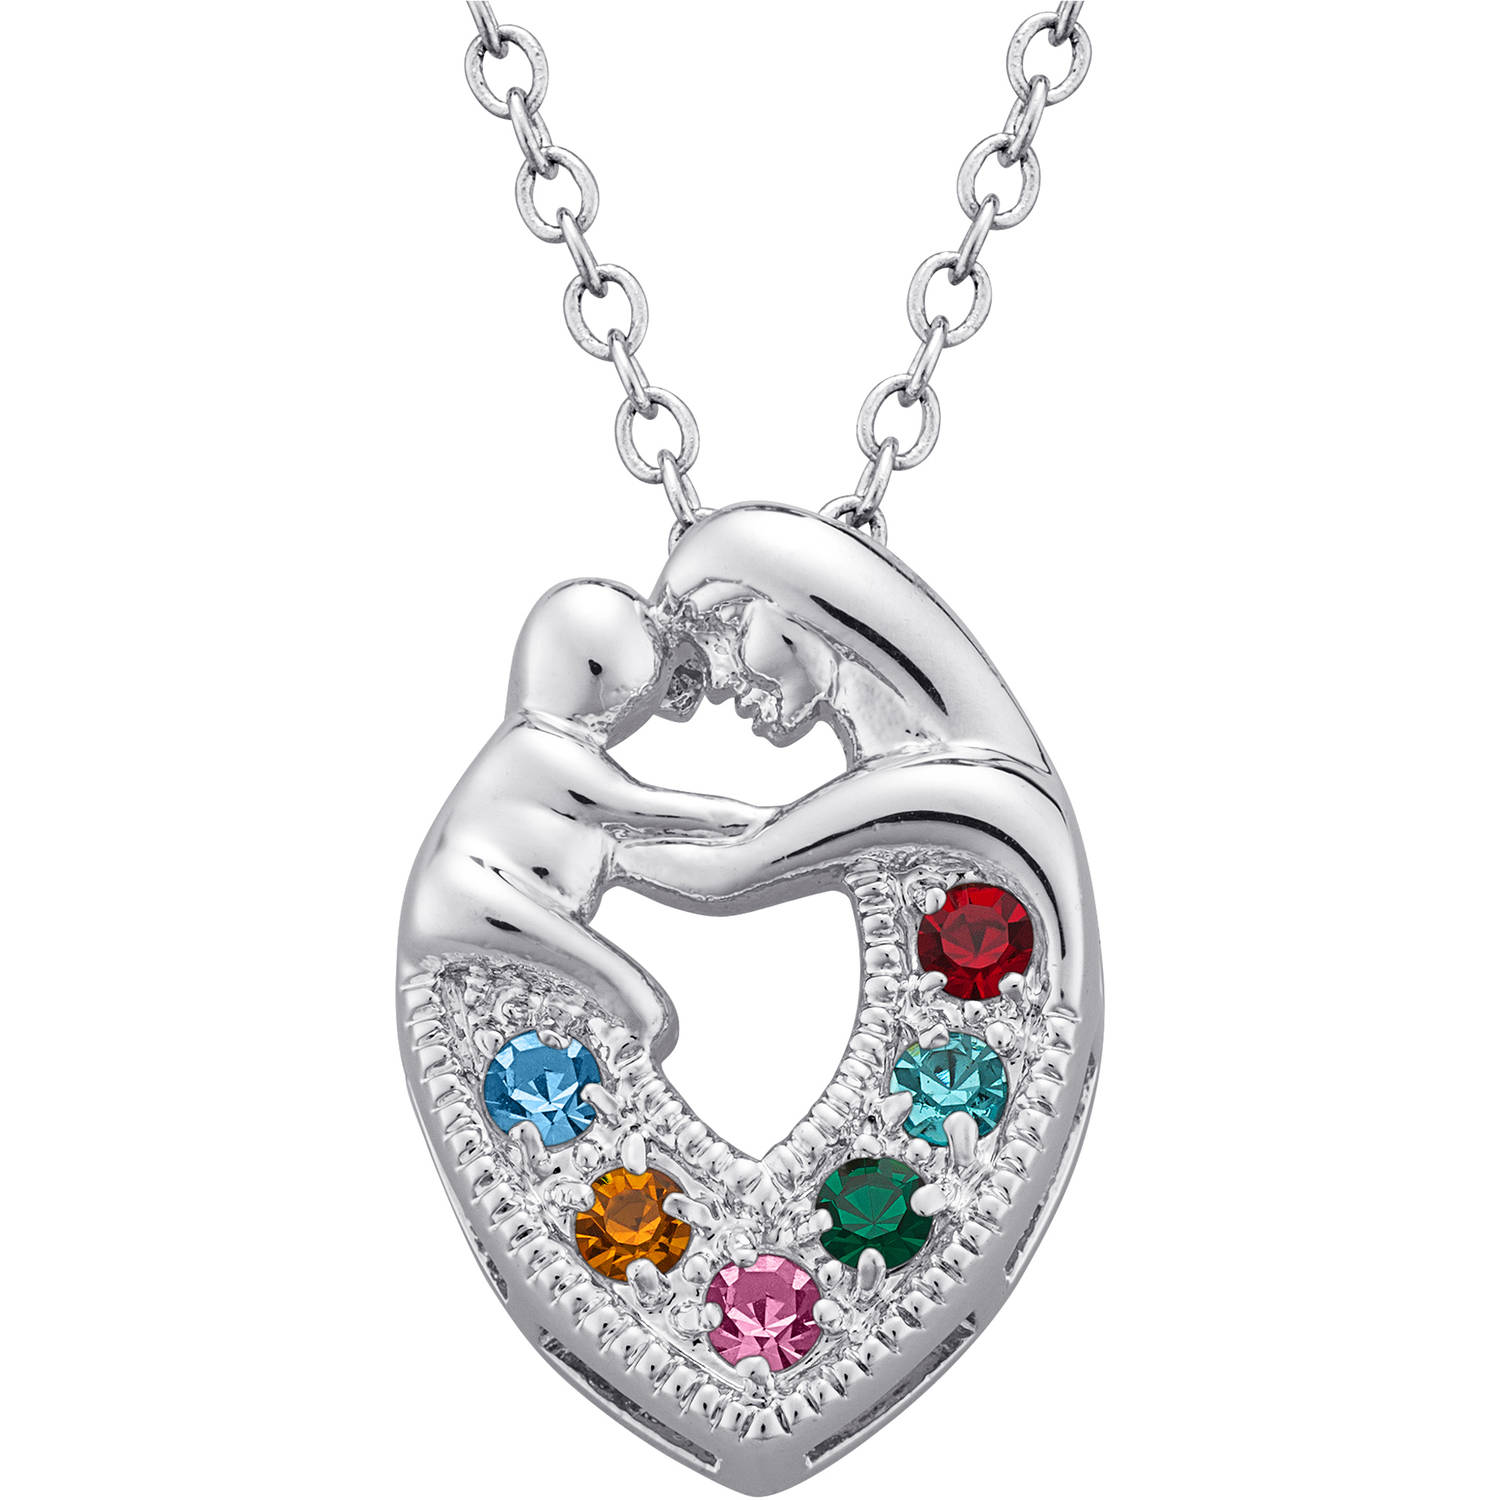 "Personalized Rhodium-Tone Embraced Mother's Family Birthstone Pendant, 18"" + 2"" Extender"